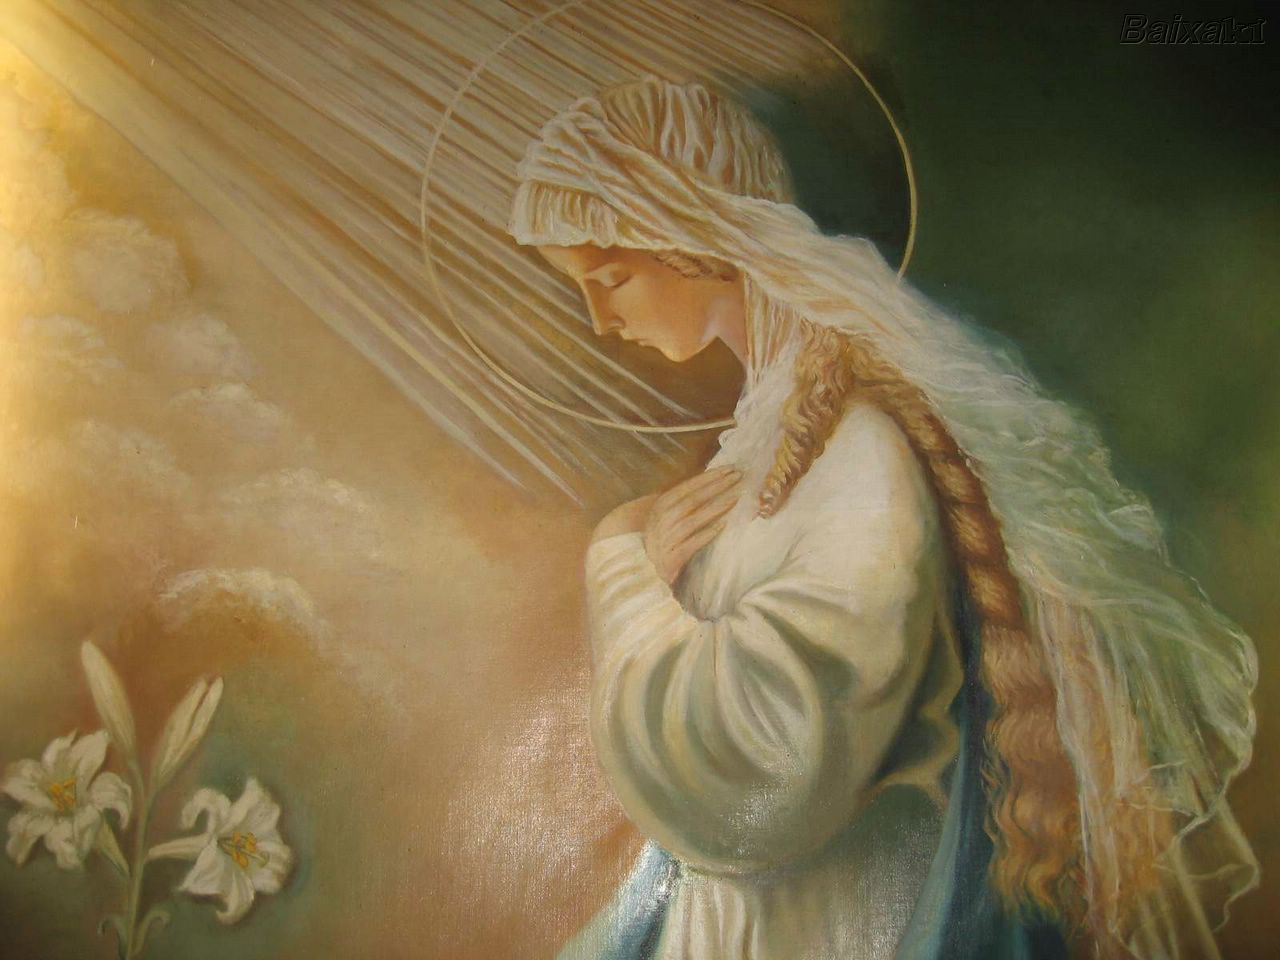 PORTAL DE LUZ FILHOS DAS ESTRELAS-M&#xC3;E-MARIA-ARCANJO MIGUEL